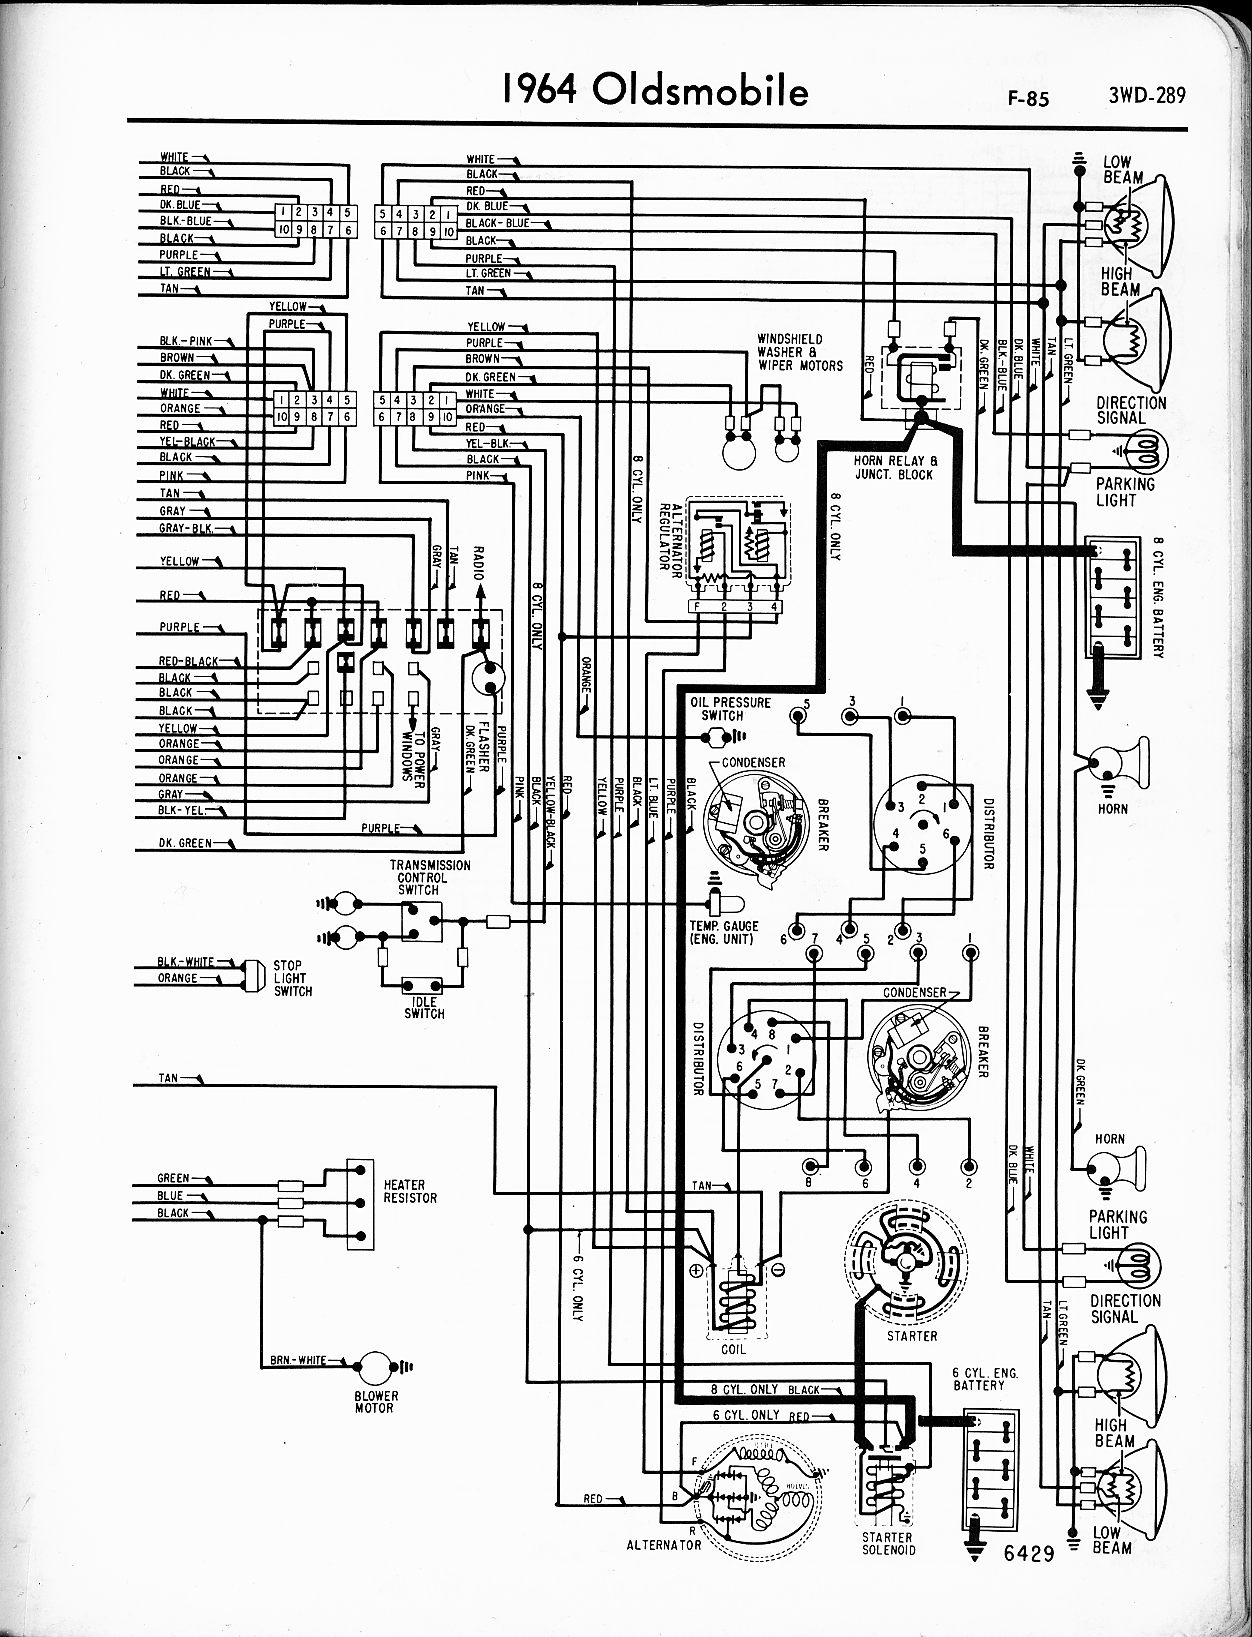 MWire5765 289 oldsmobile wiring diagrams oldsmobile wiring diagrams instruction Wiring Schematics for Johnson Outboards at suagrazia.org